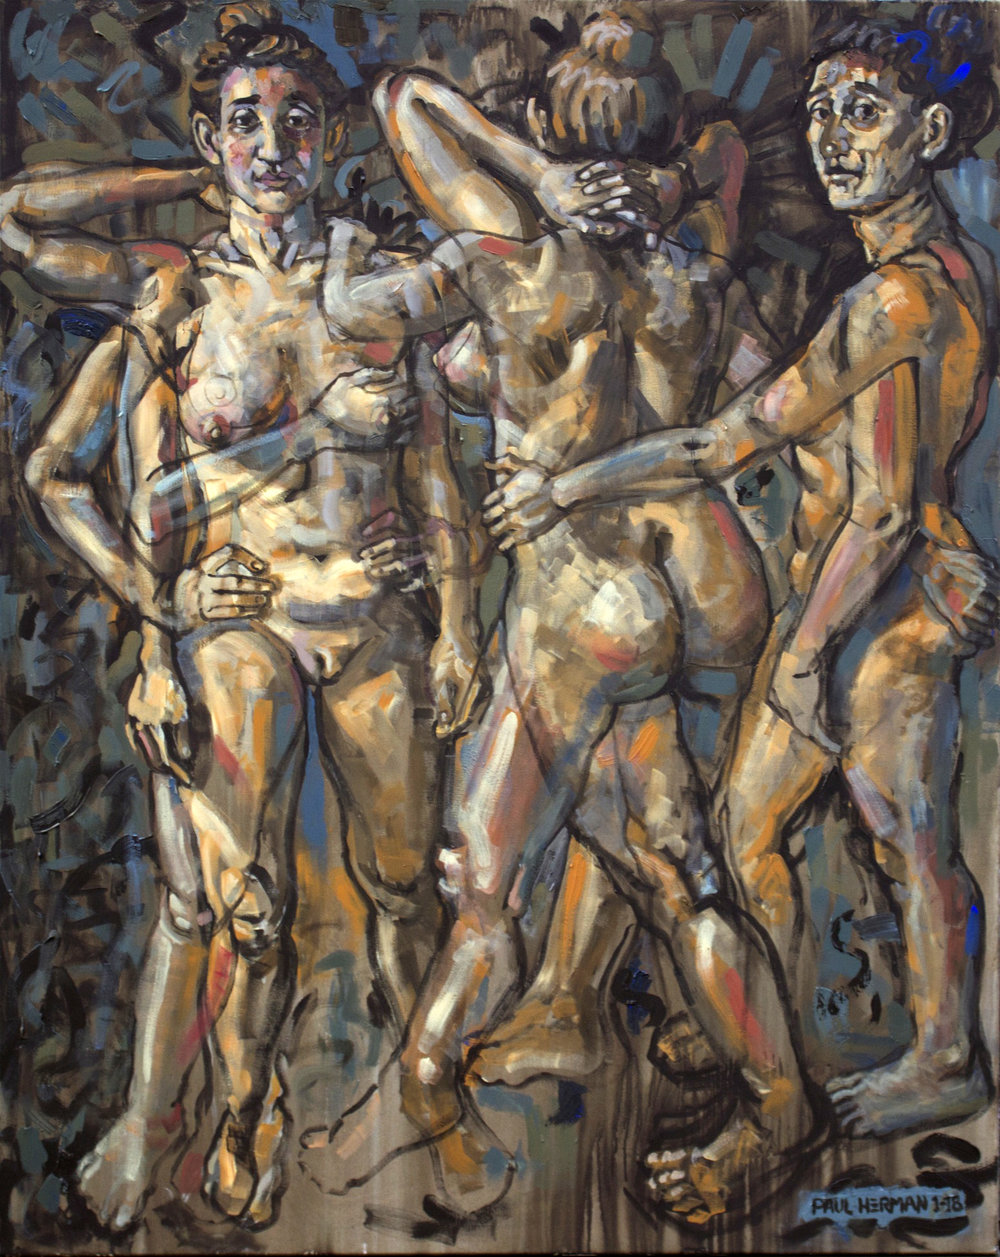 Paul Herman, Europhrynes, Aglaia, & Thalia, Acrylics on canvas, 150 x 120 x 3 cm,  http://hermanstudios.com